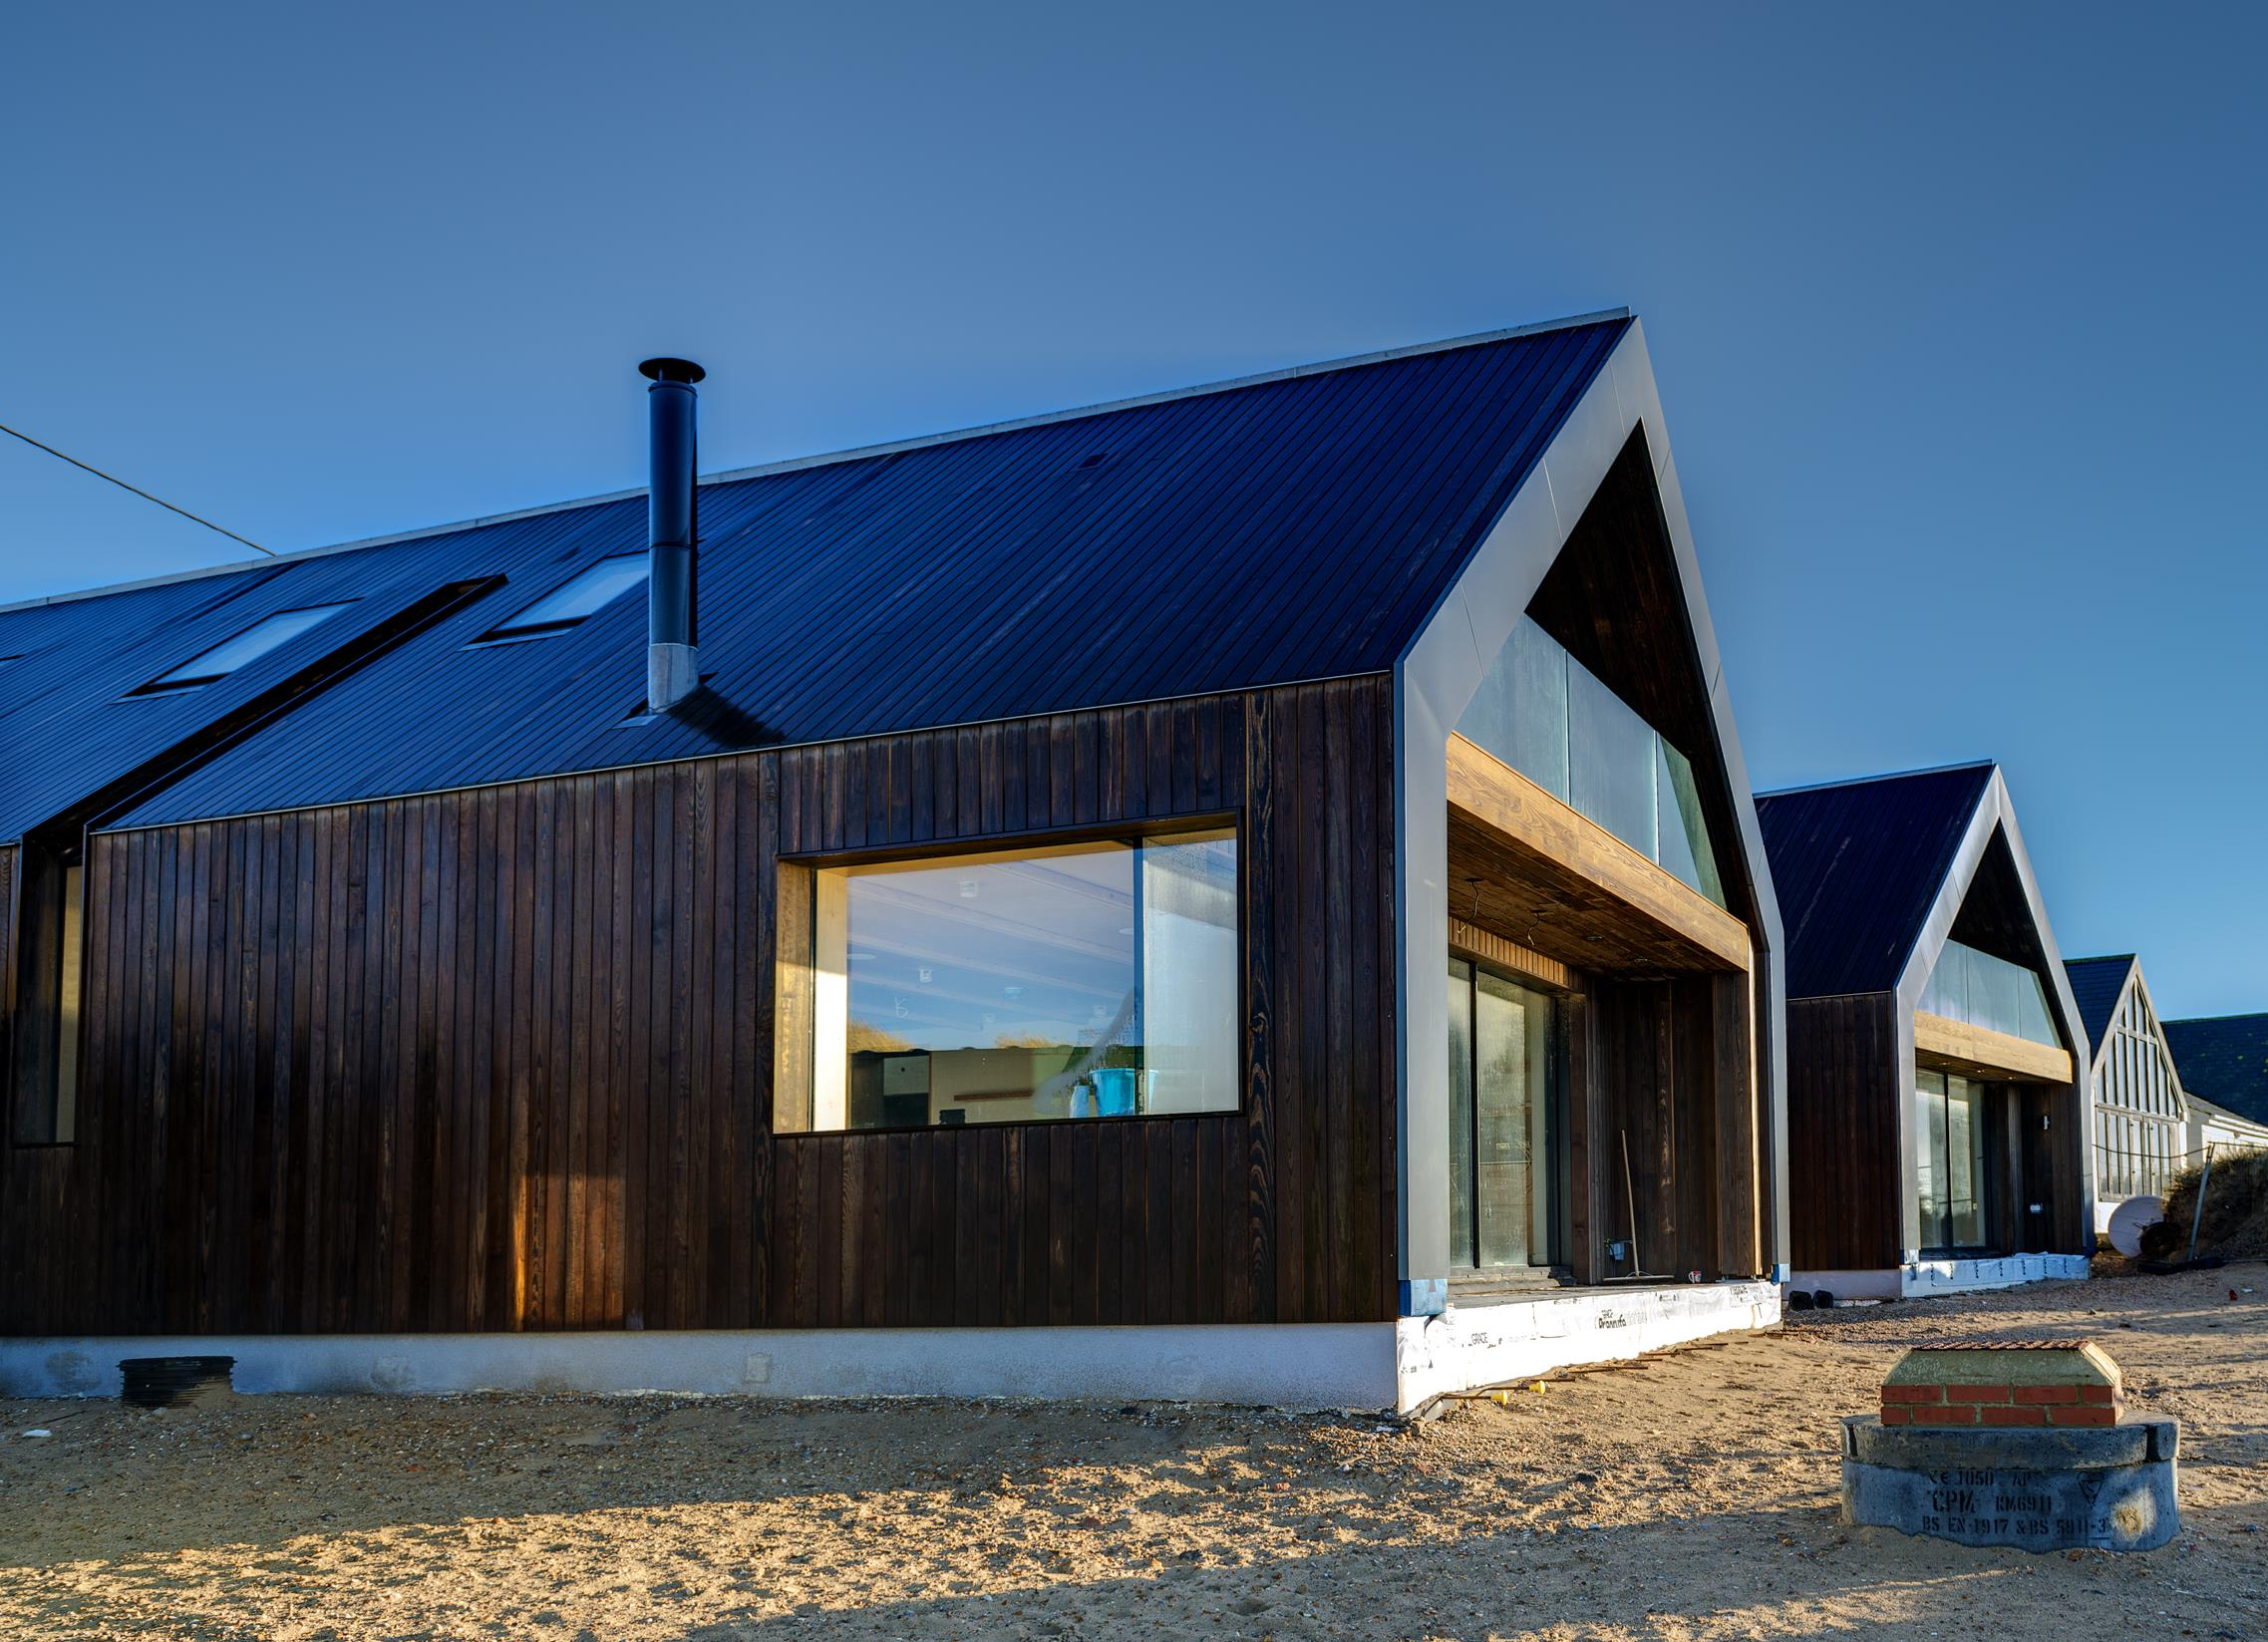 ... Camber Sand Beach Houses using Kerto Q and Kerto S ...